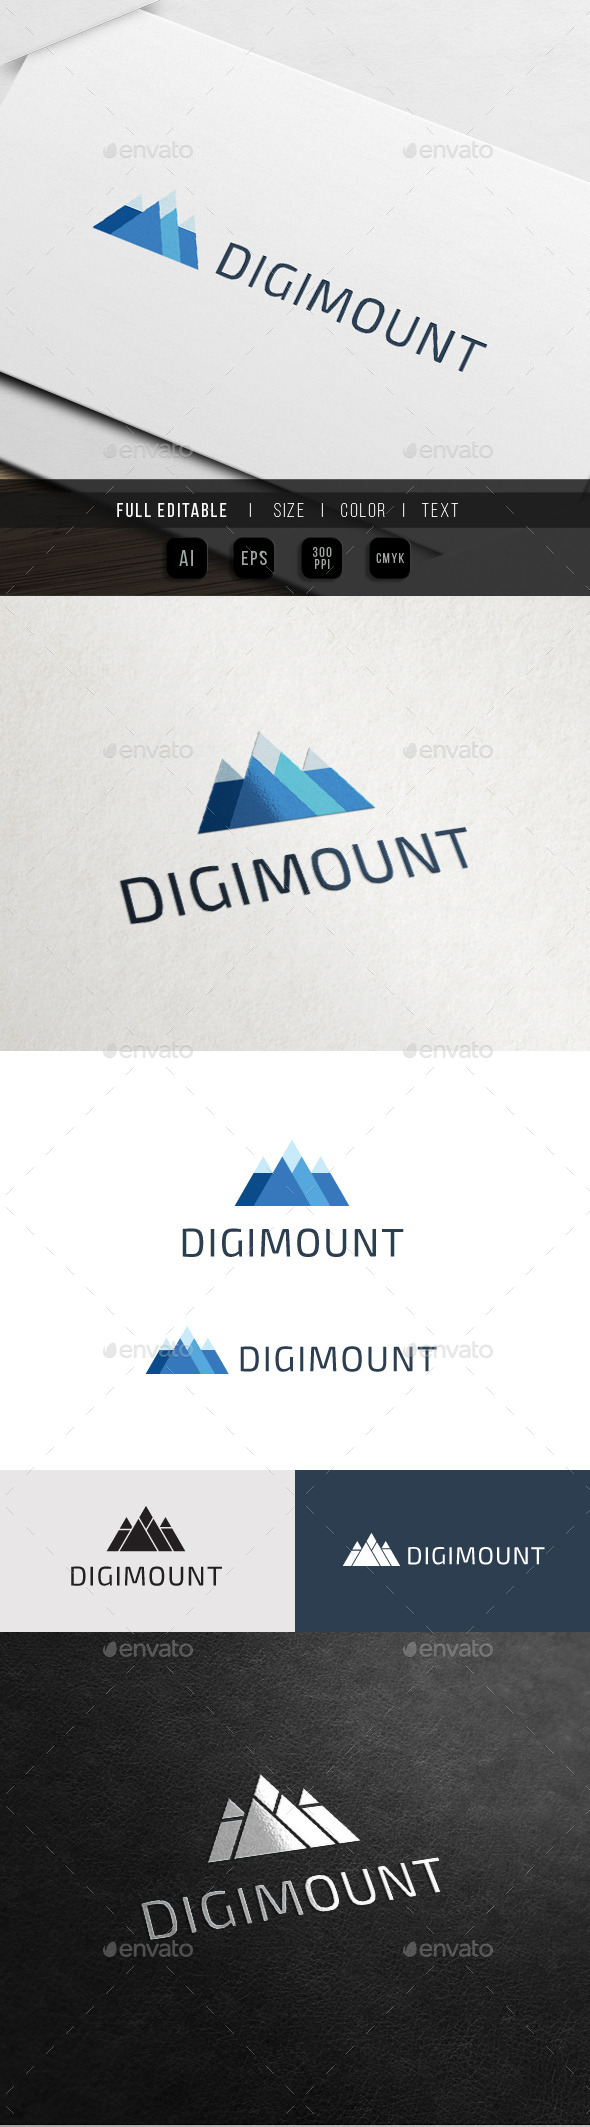 Digital Mountain - Triangle Pyramid